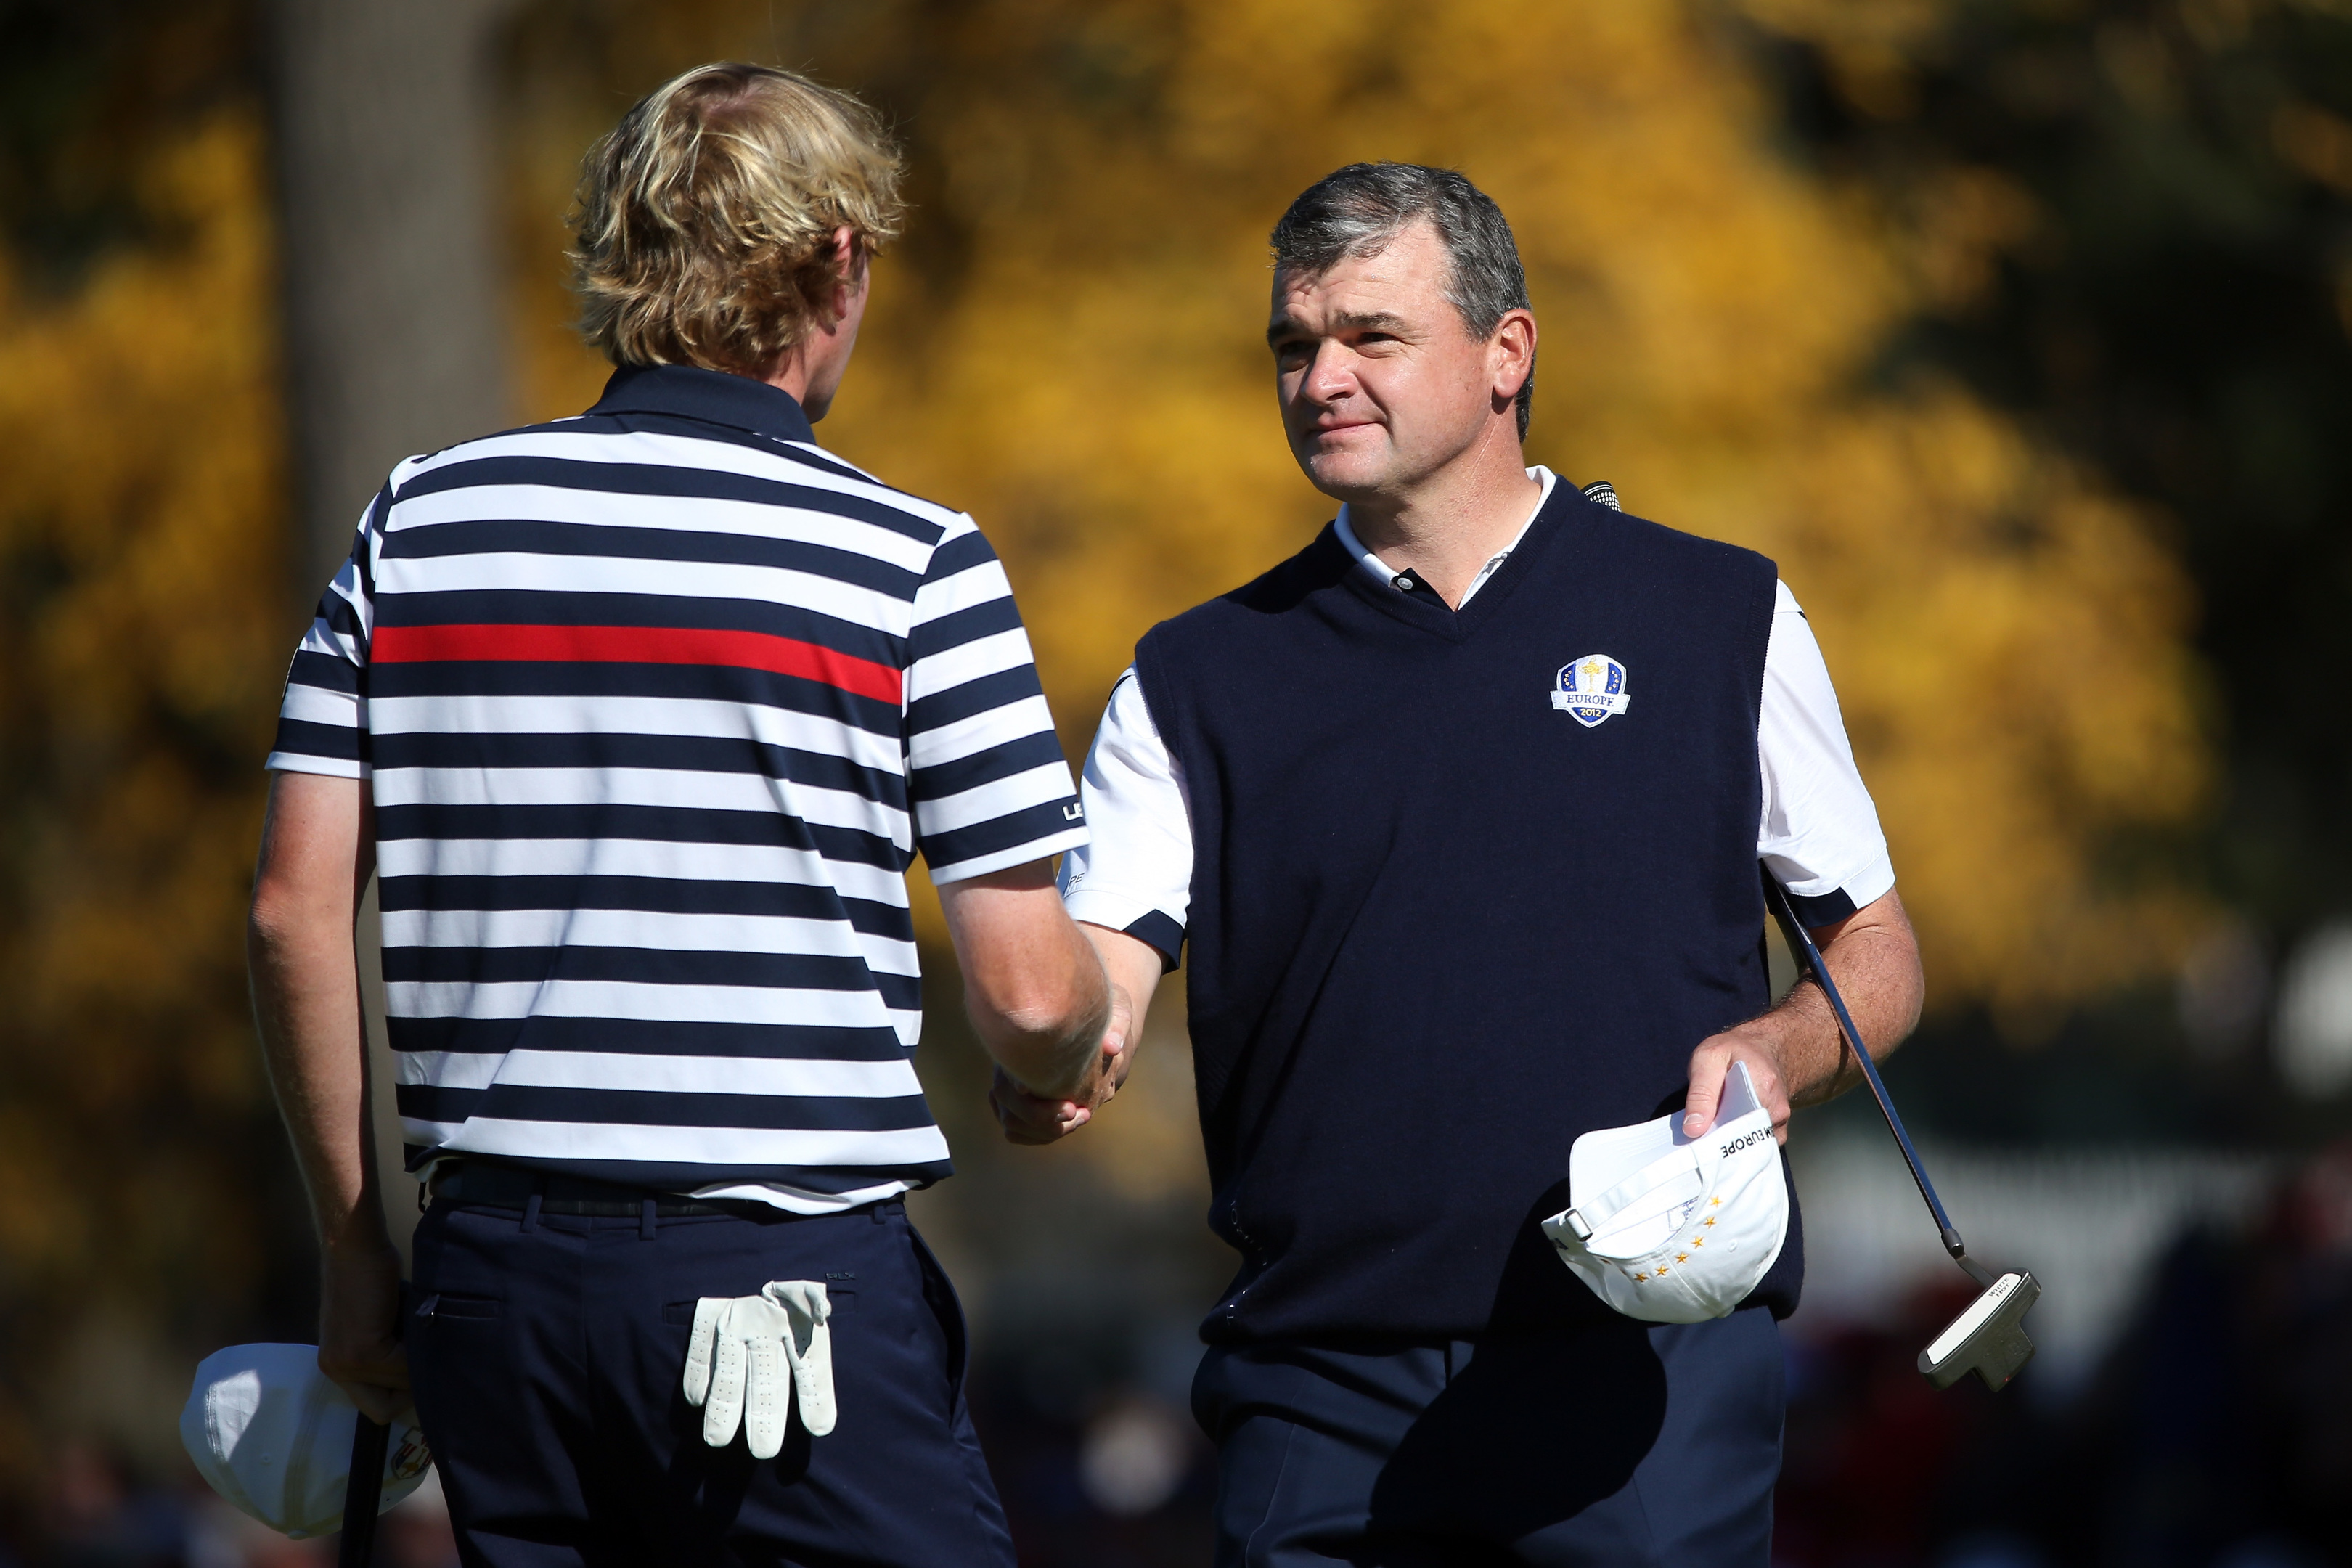 Paul Lawrie, right, shakes hands with Brandt Snedeker at Medinah.